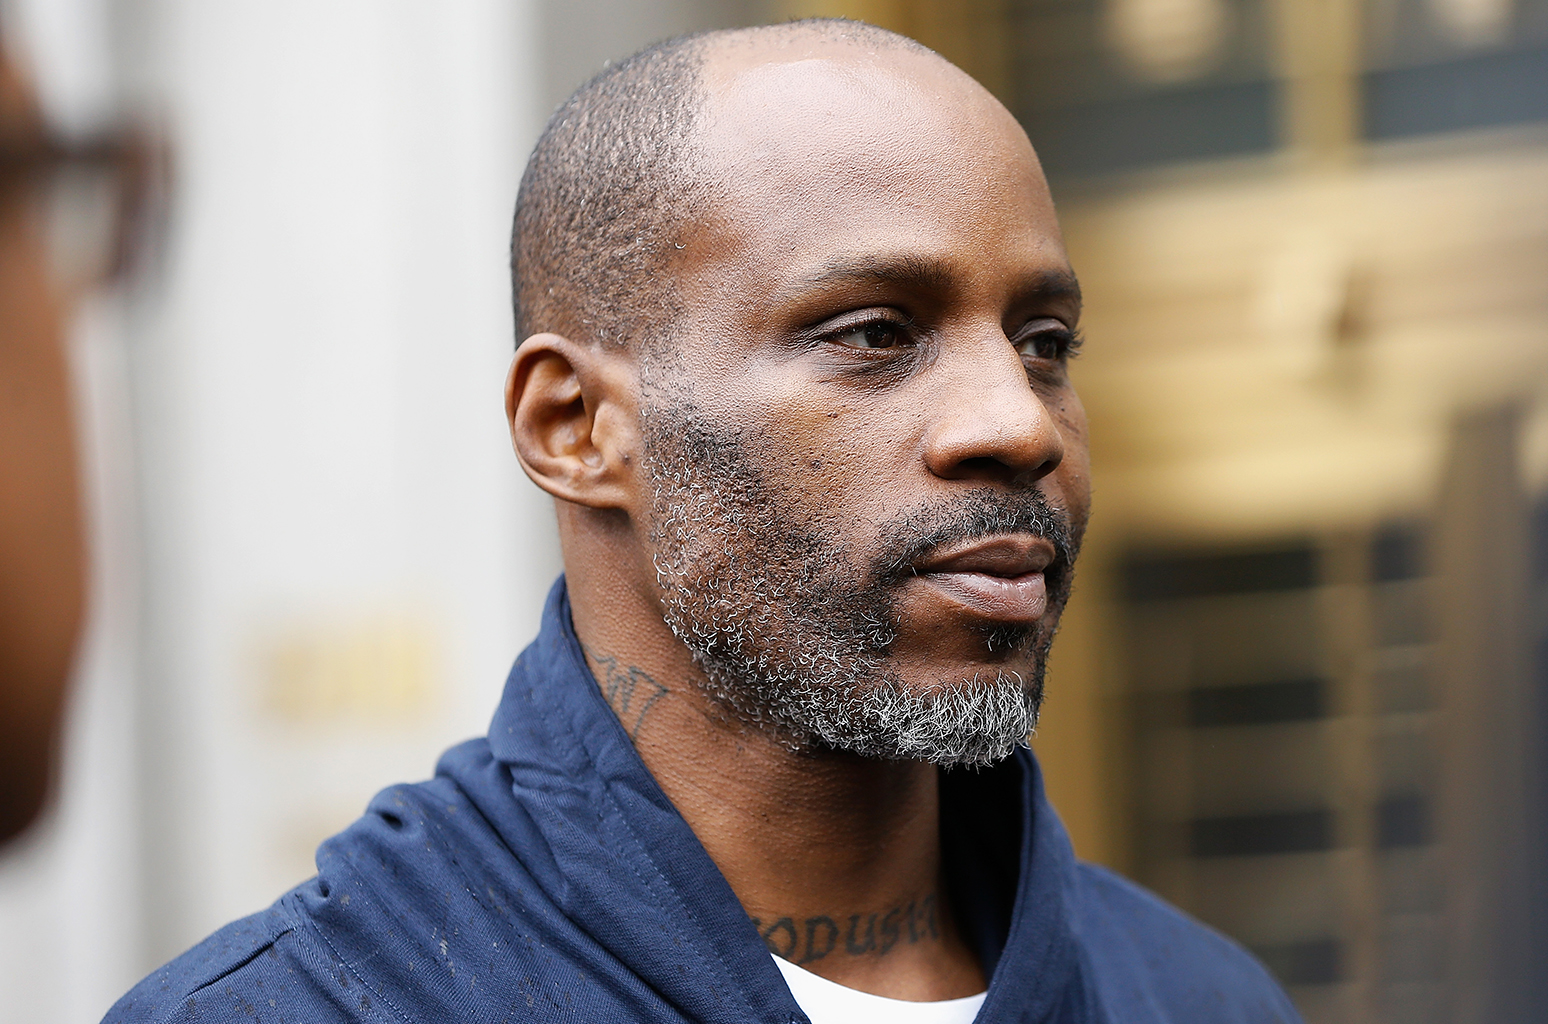 DMX Fails Drug Tests, Heads Back To Jail